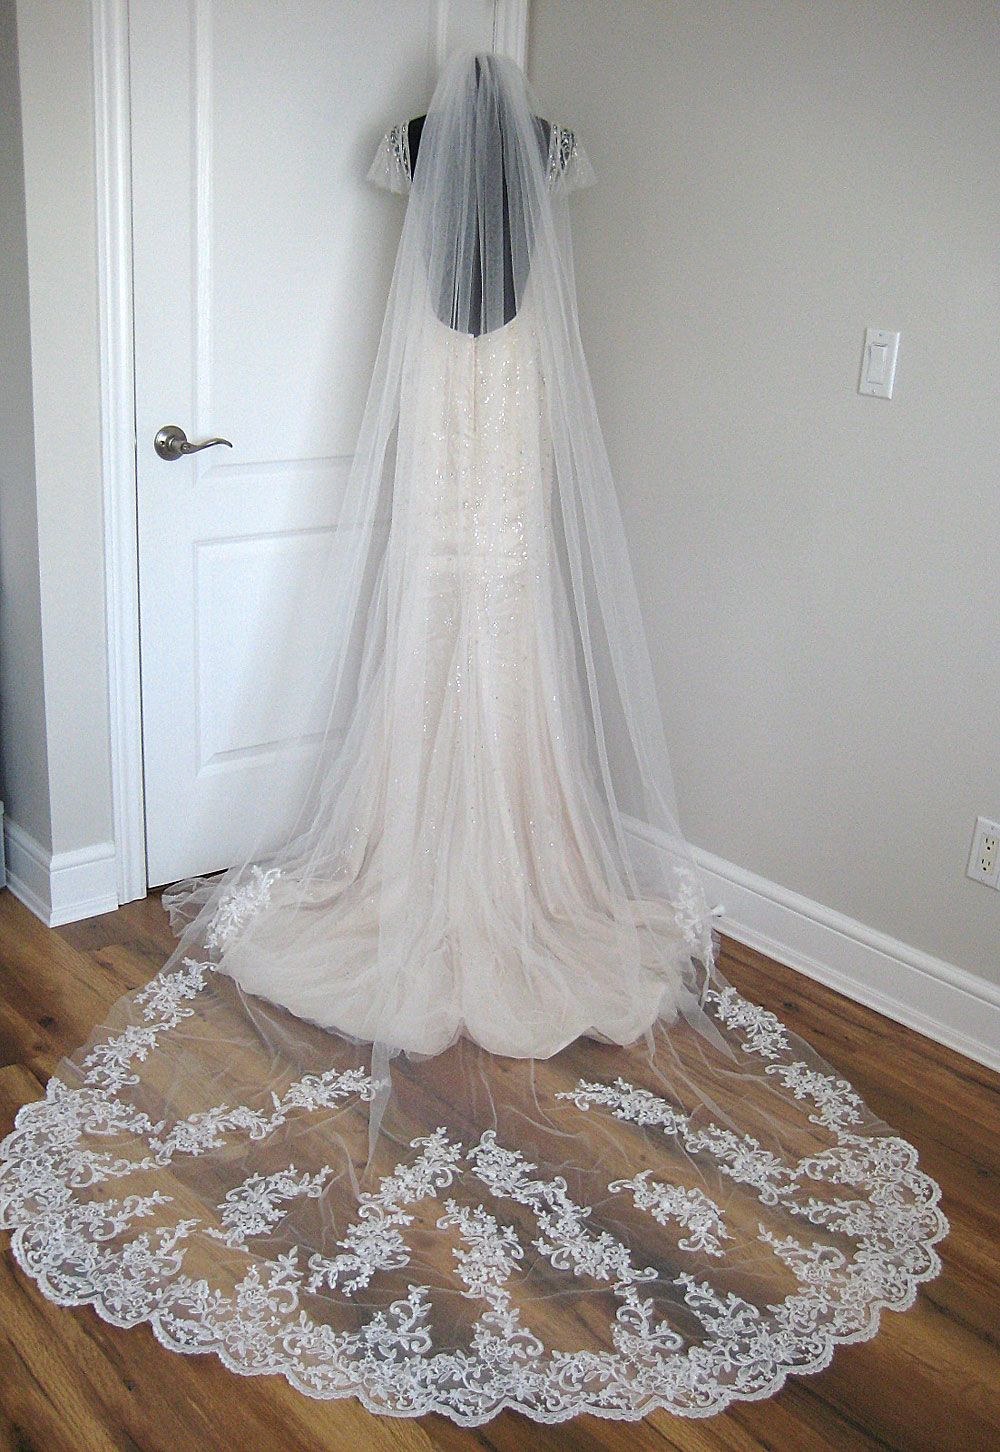 Pin on Wedding Veils & Accessories for sale